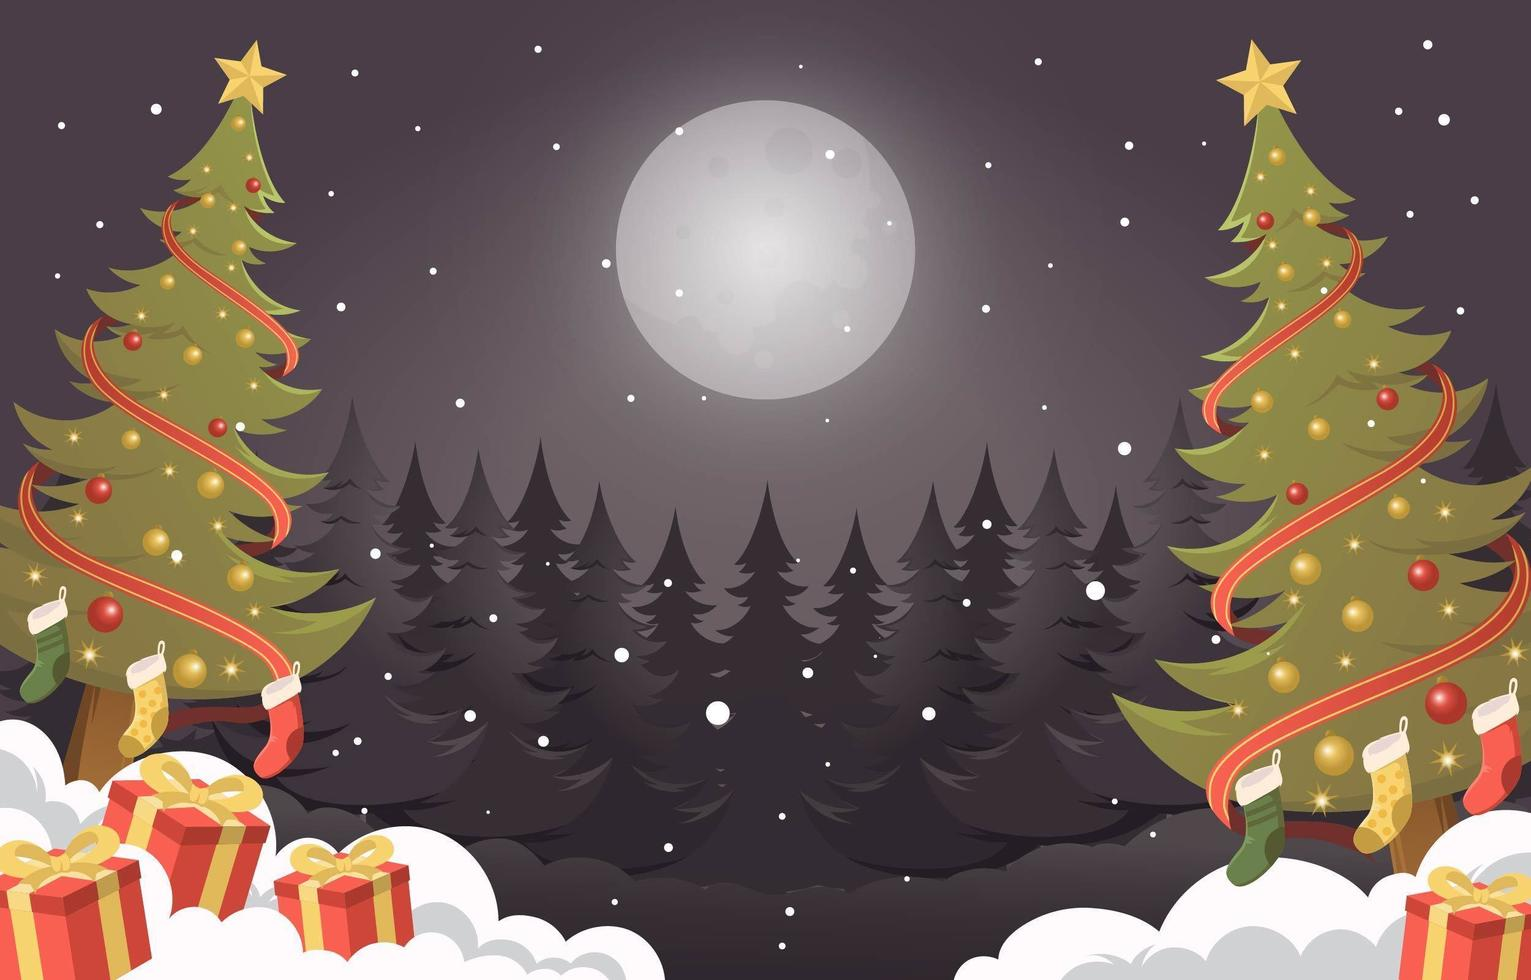 A White Christmas Night with Gifts and Evergreen Trees vector